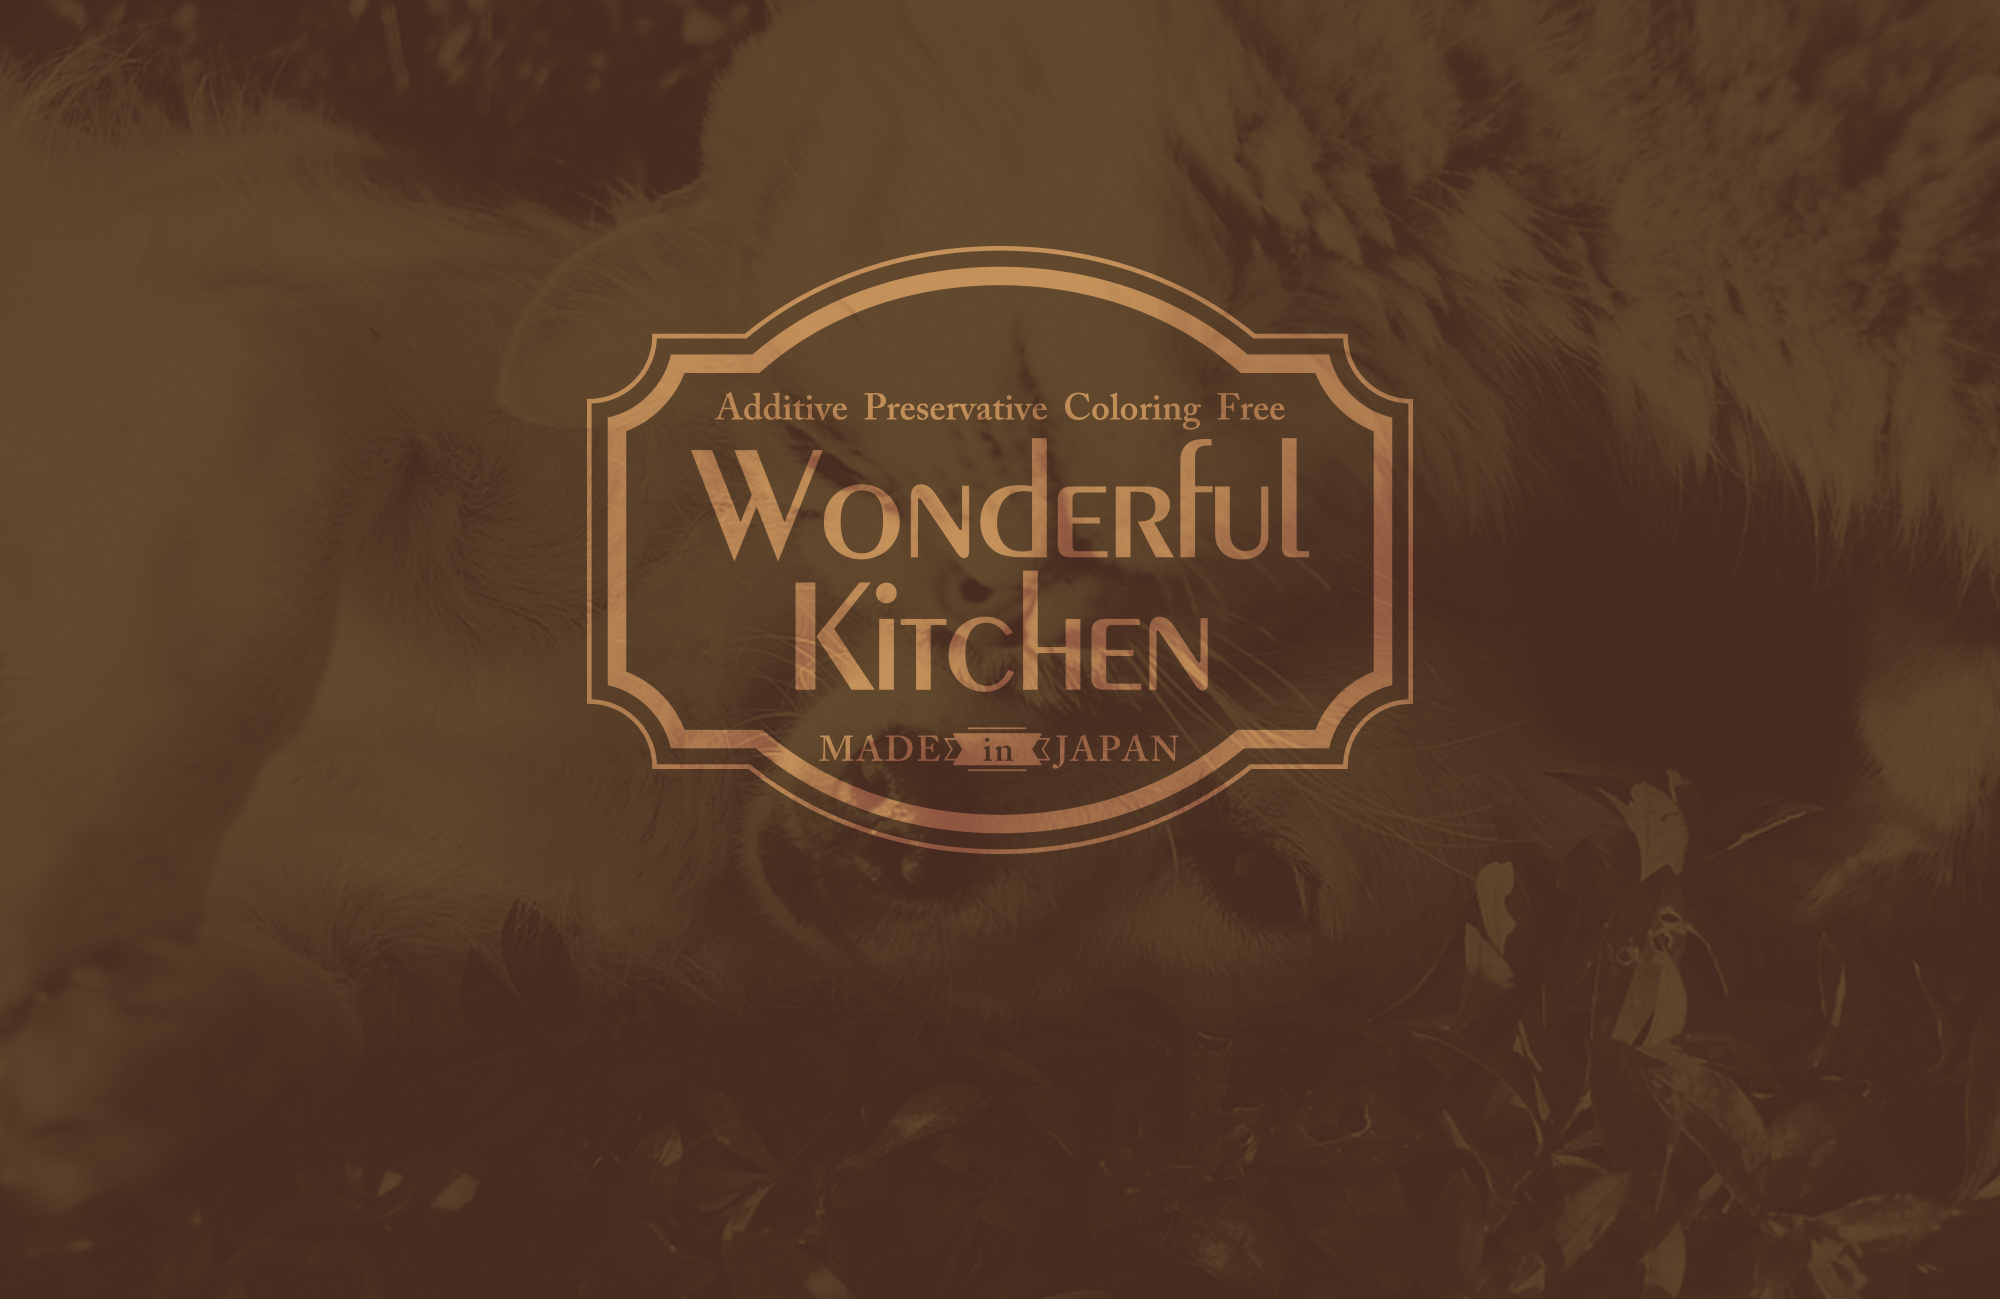 WonderfulKitchen